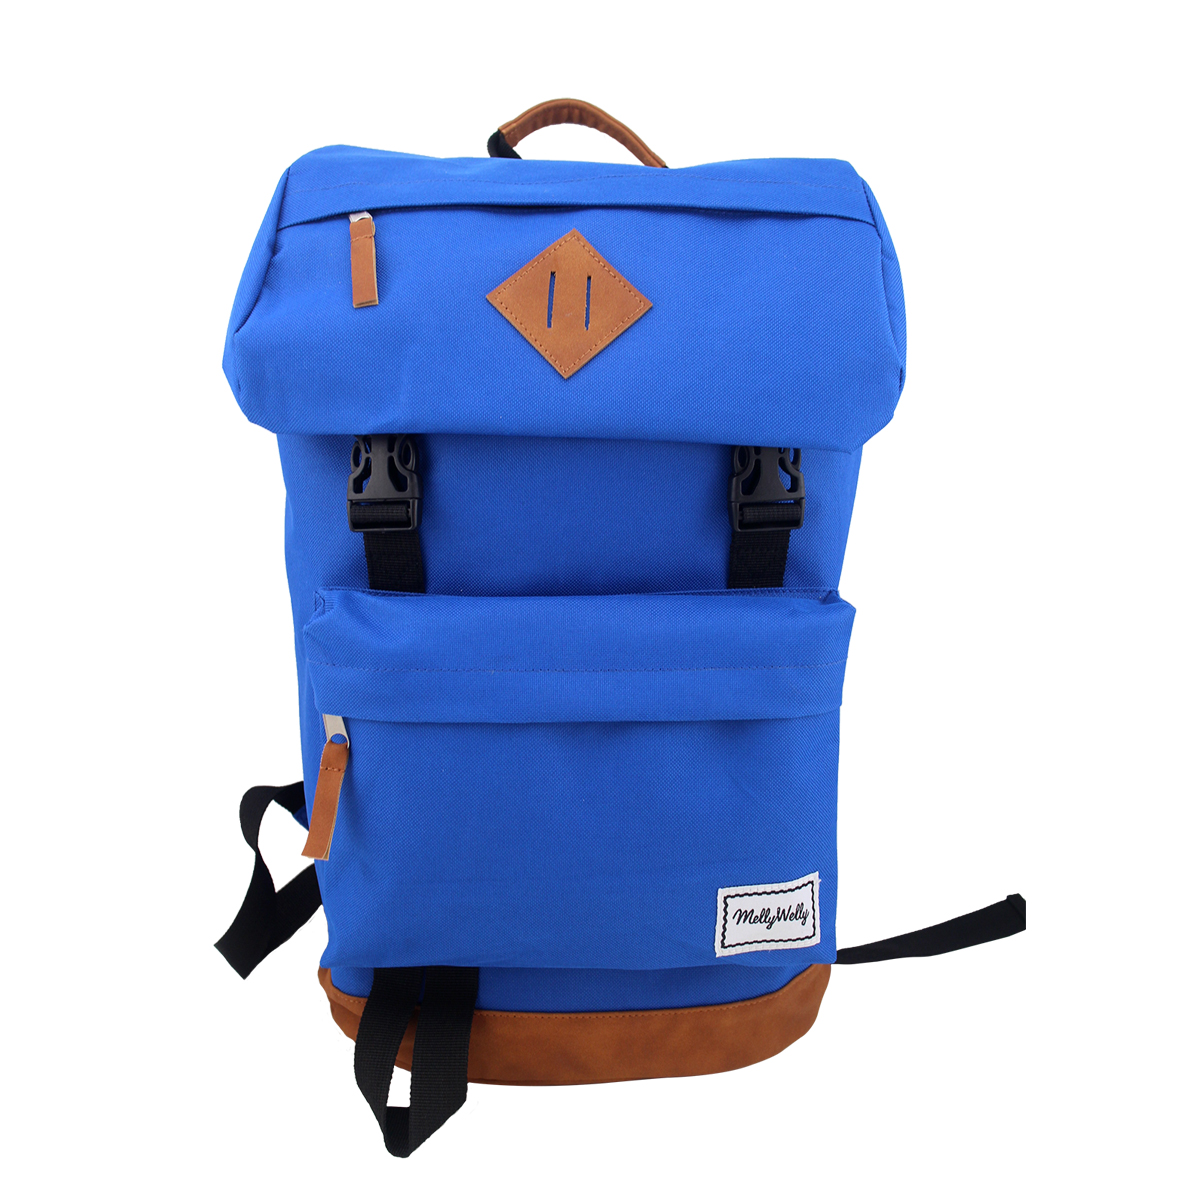 Top Flap Square Backpack